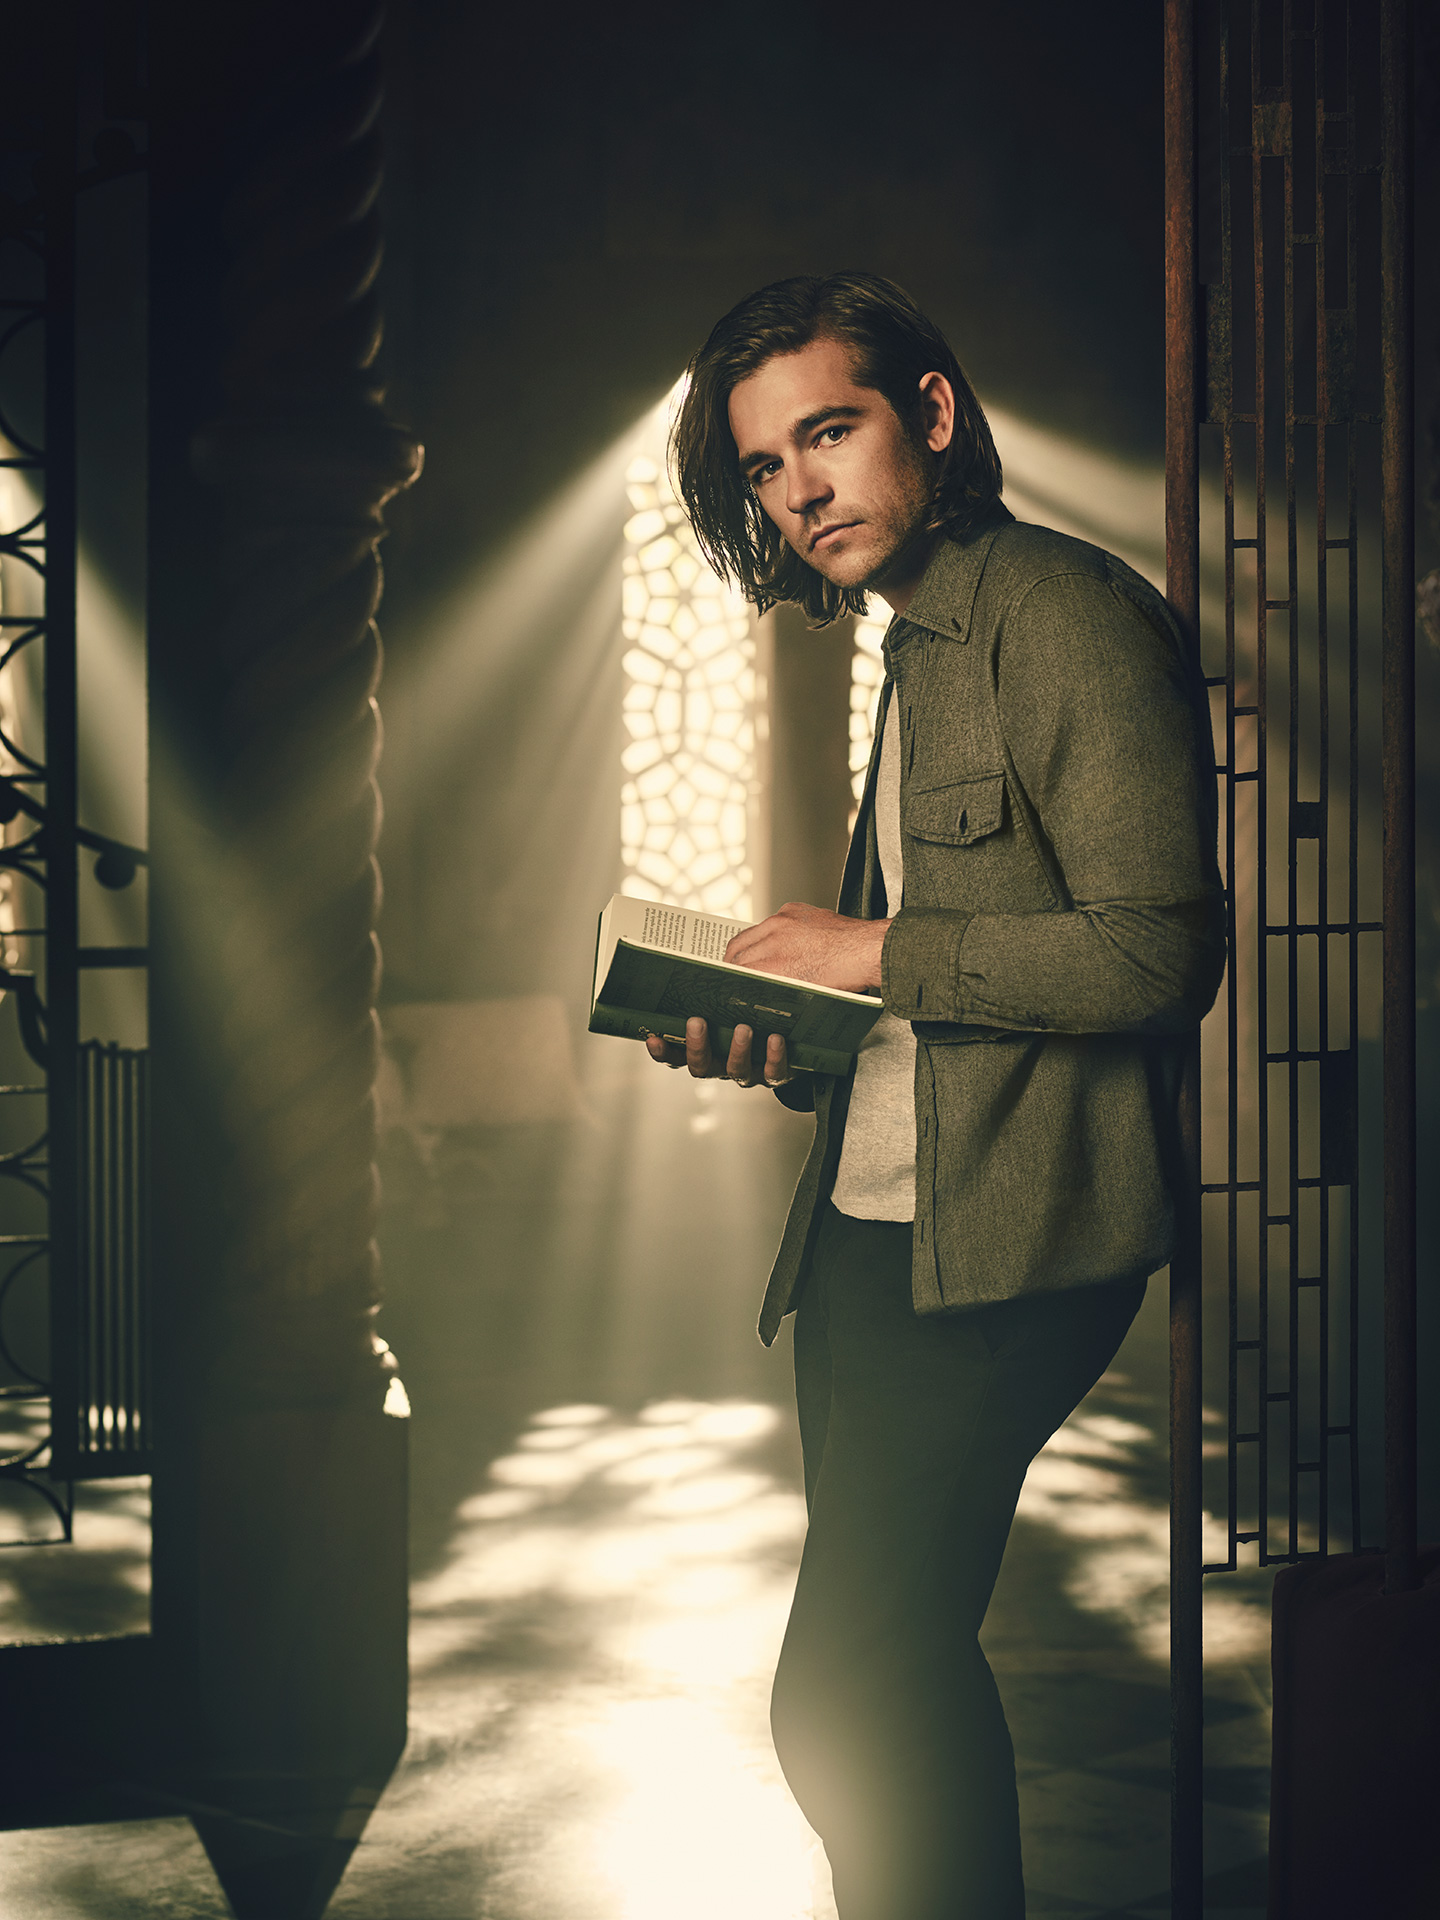 jason ralph (actor)jason ralph instagram, jason ralph height, jason ralph gif, jason ralph tumblr, jason ralph (actor), jason ralph photos, jason ralph girl, jason ralph wdw, jason ralph wife, jason ralph gossip girl, jason ralph biography, jason ralph facebook, jason ralph, jason ralph wikipedia, jason ralph age, jason ralph wiki, jason ralph actor age, jason ralph birthday, jason ralph filmography, jason ralph hockey